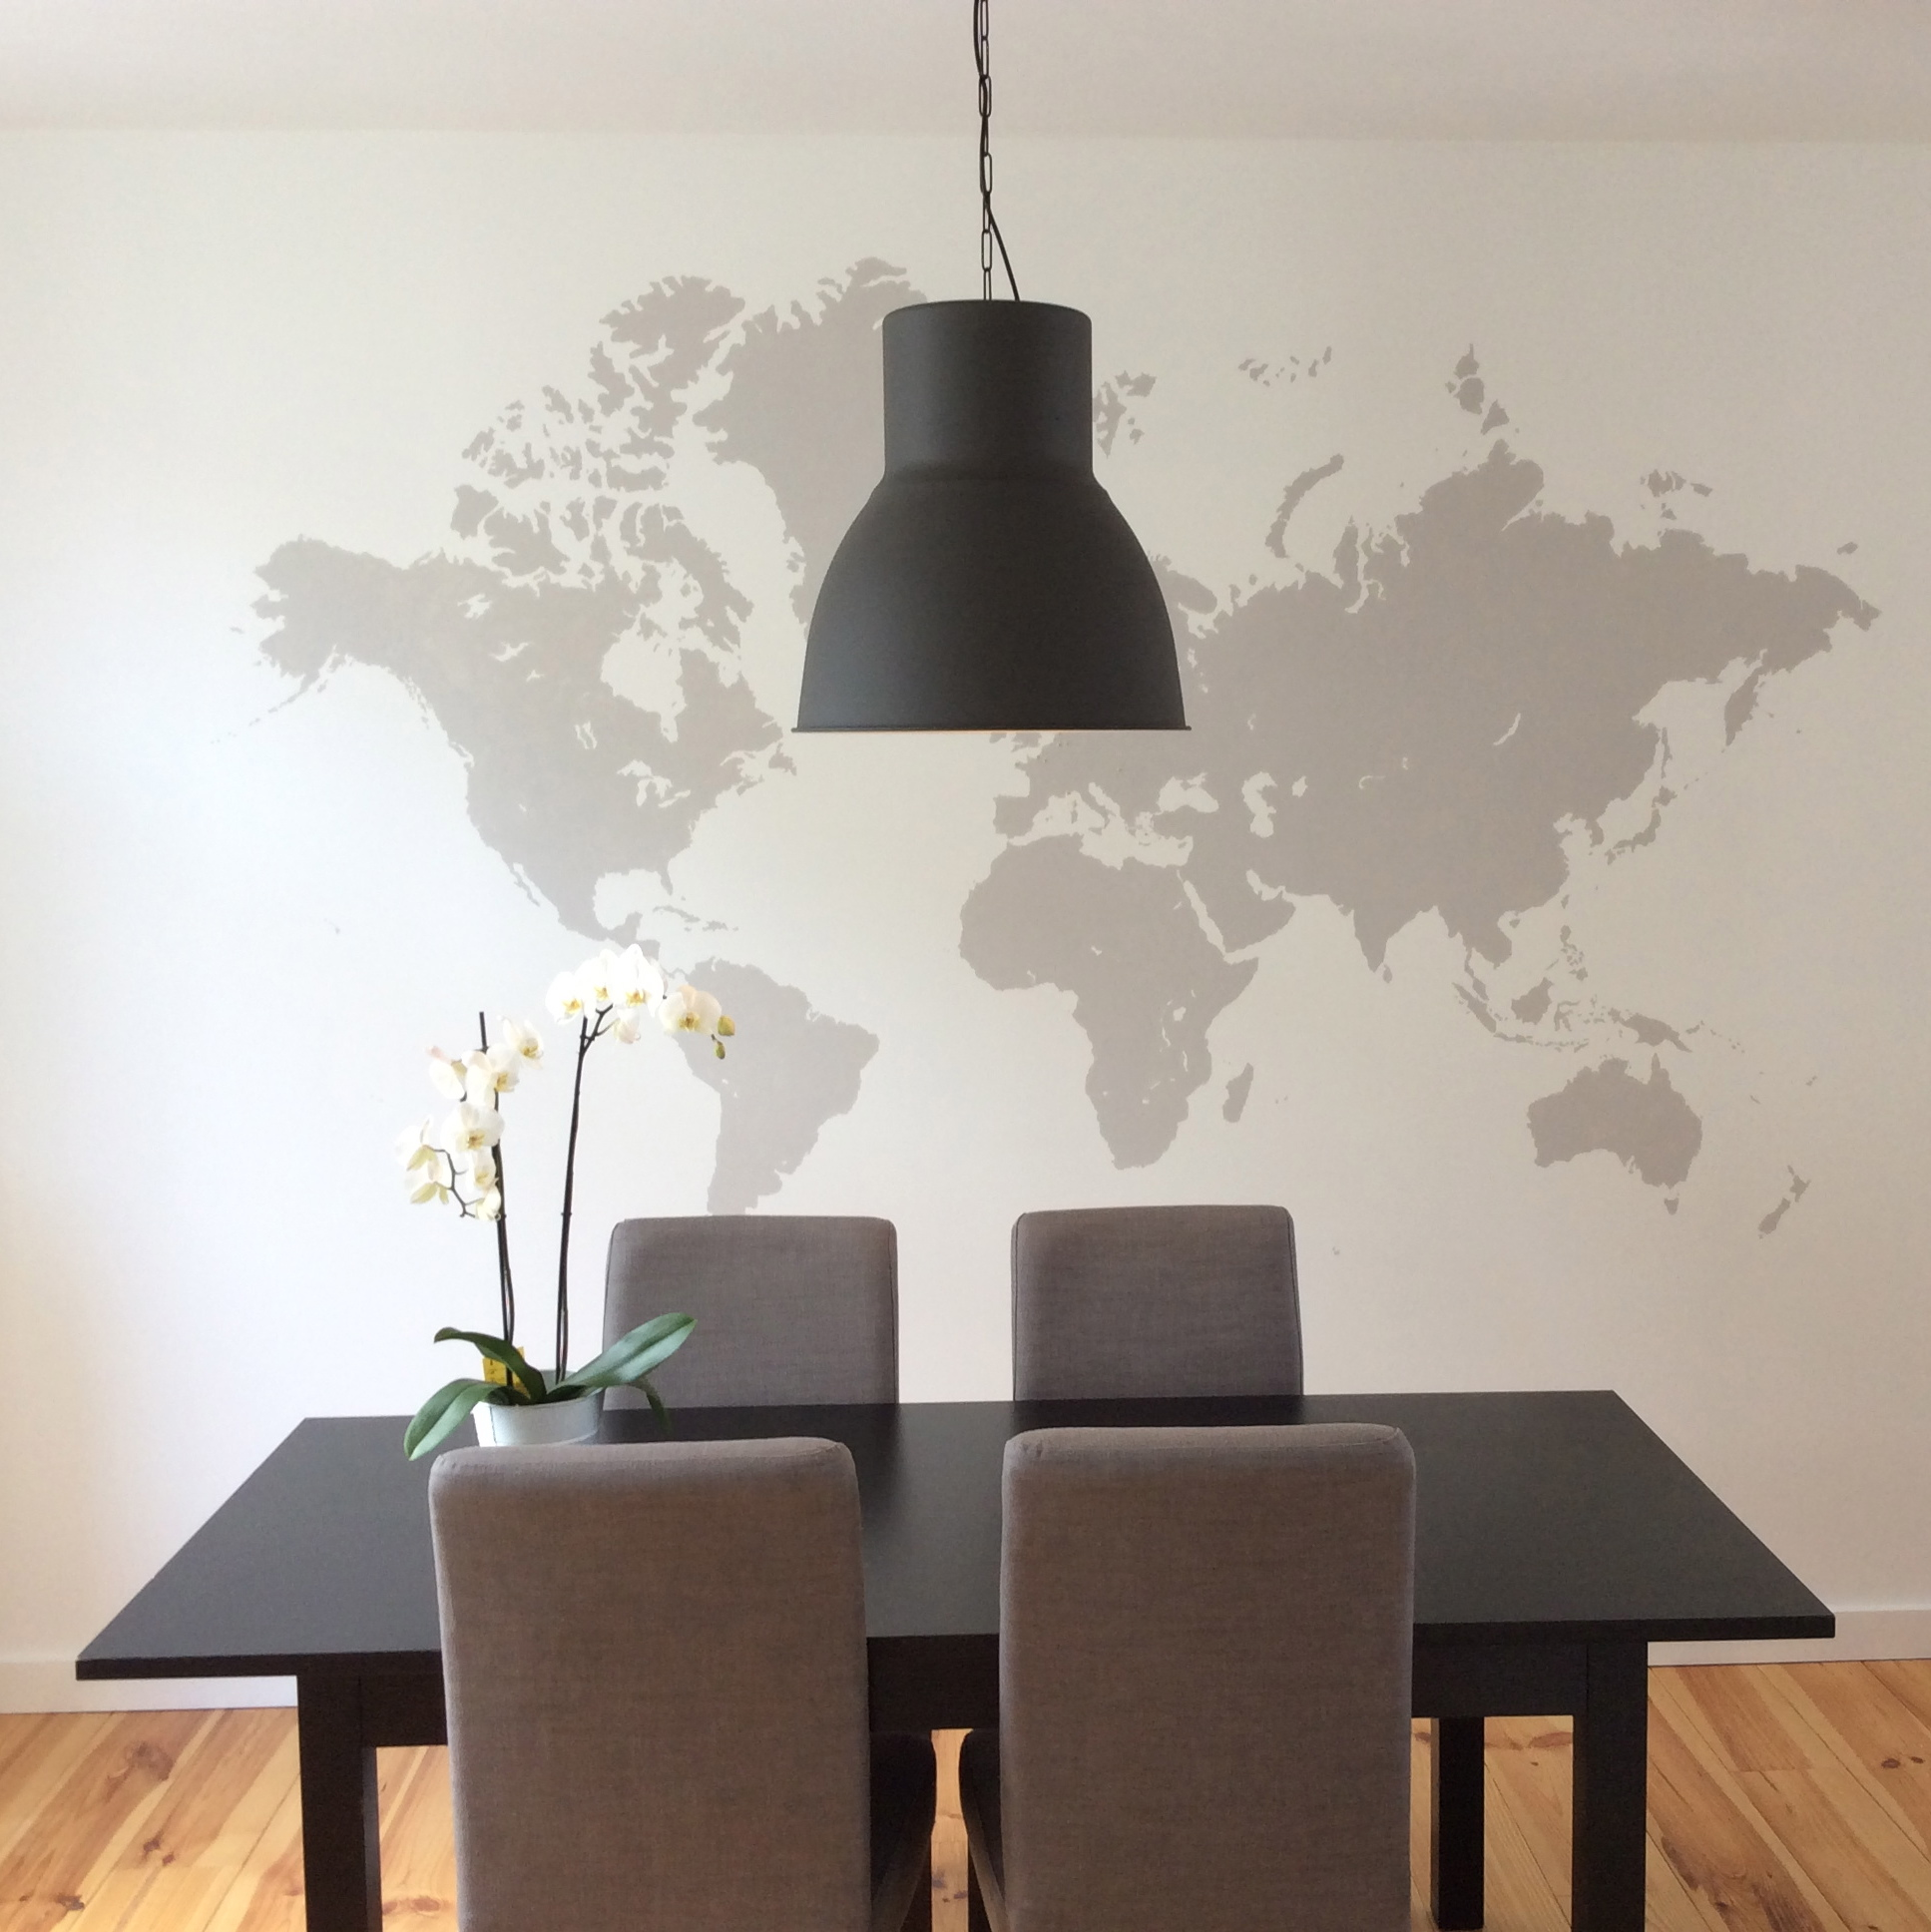 diy 6 une mappemonde murale pierre papier ciseaux. Black Bedroom Furniture Sets. Home Design Ideas